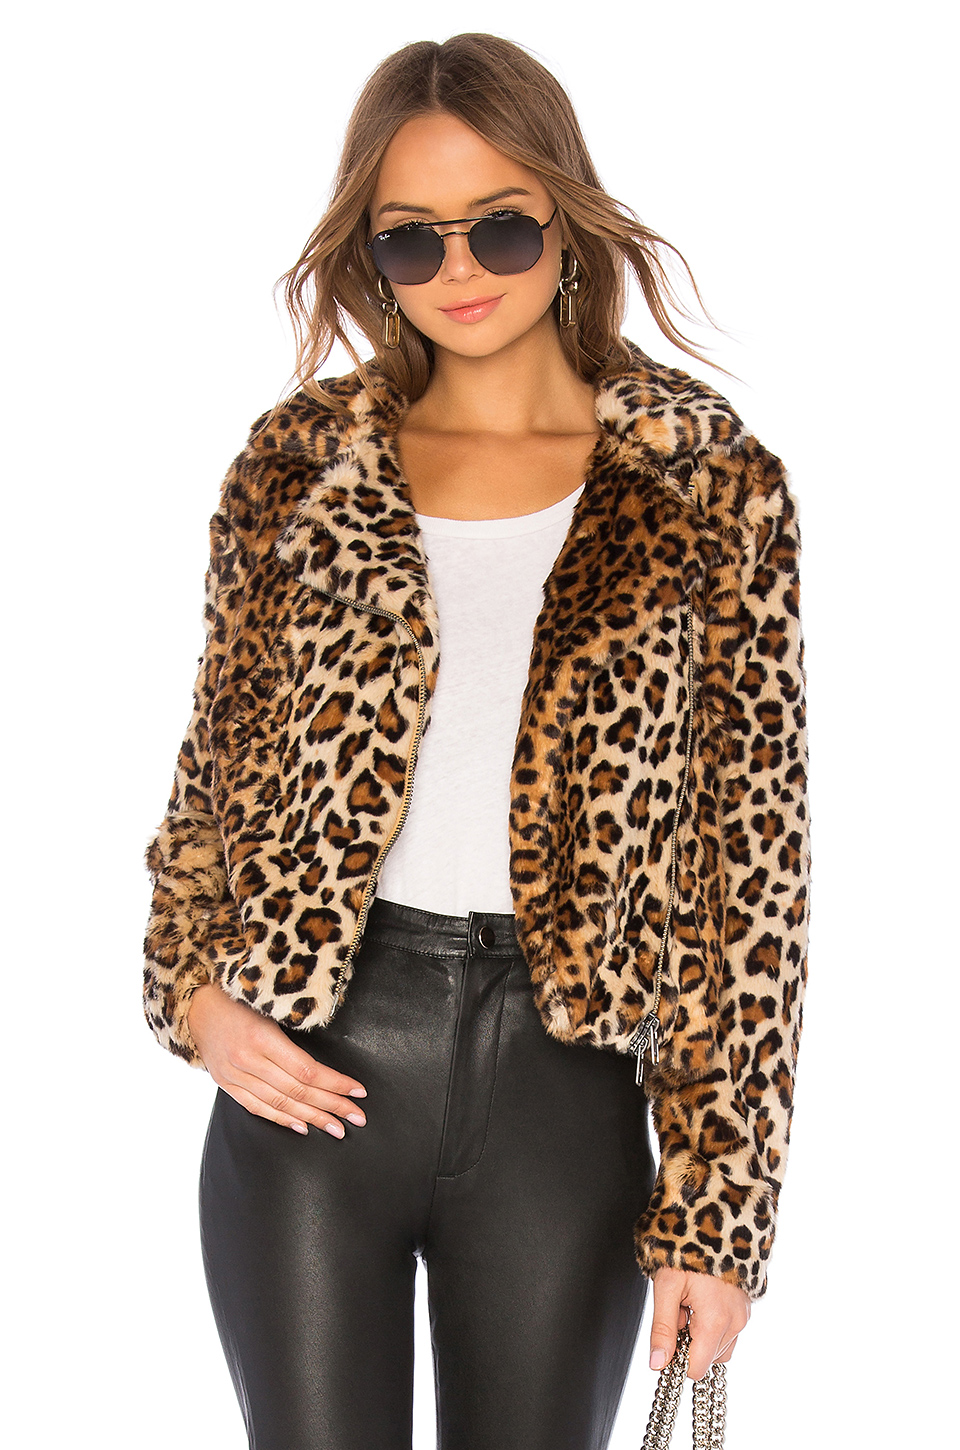 on feet at special sales 100% quality Hudson Faux Fur Jacket, Rebecca Minkoff